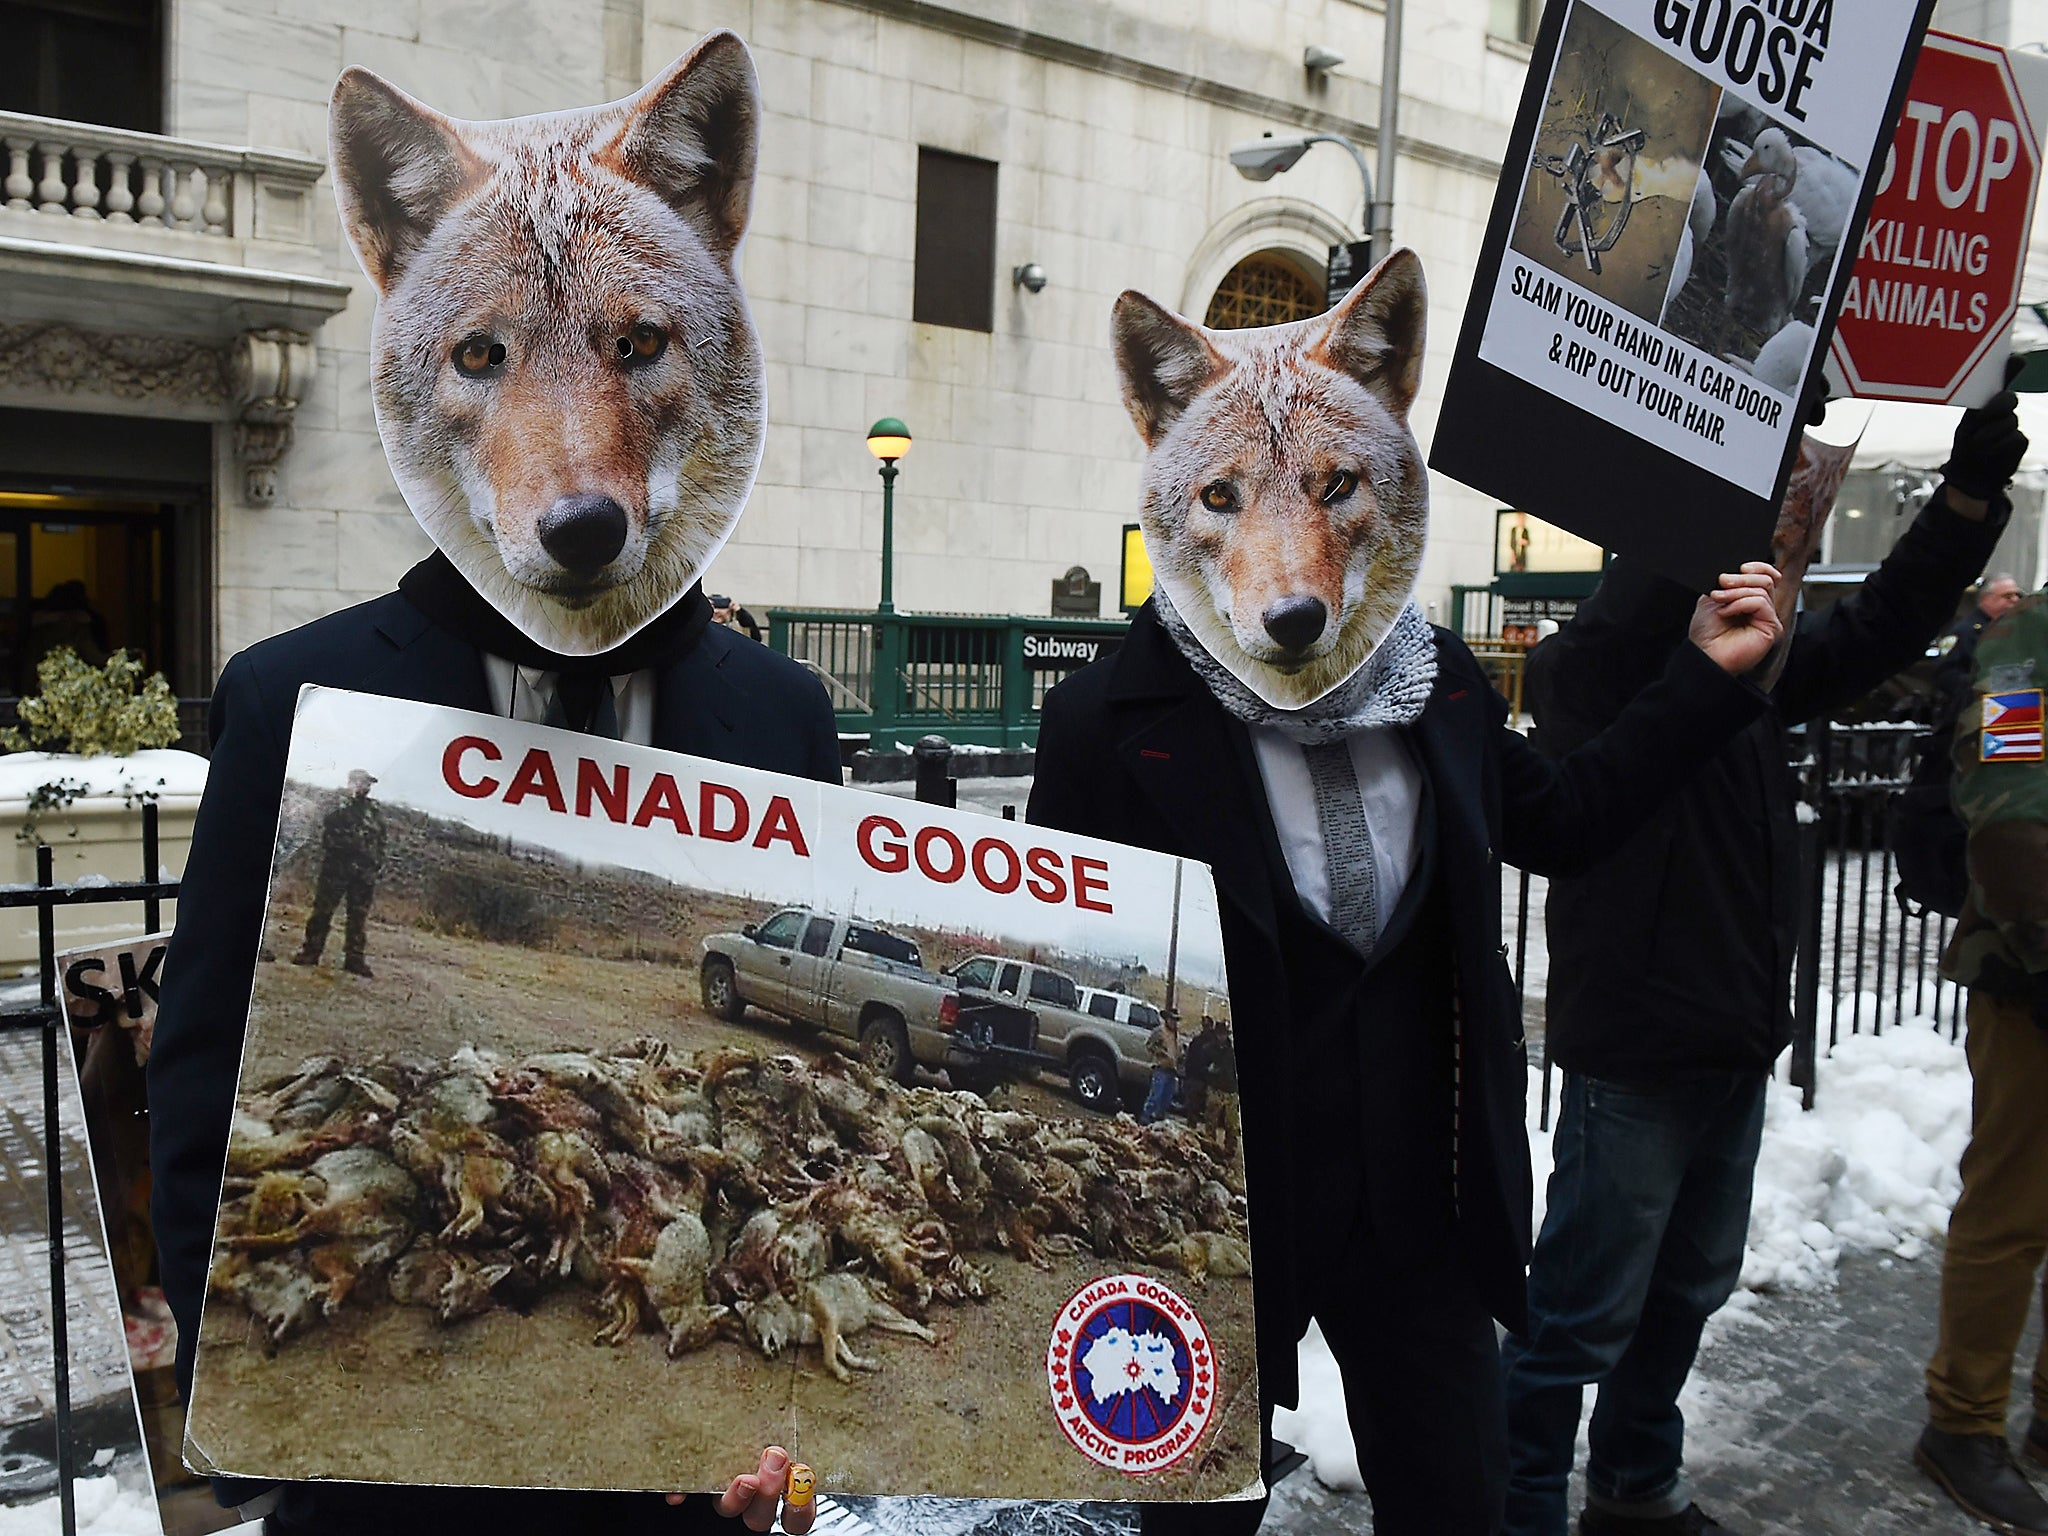 does canada goose use wolf fur